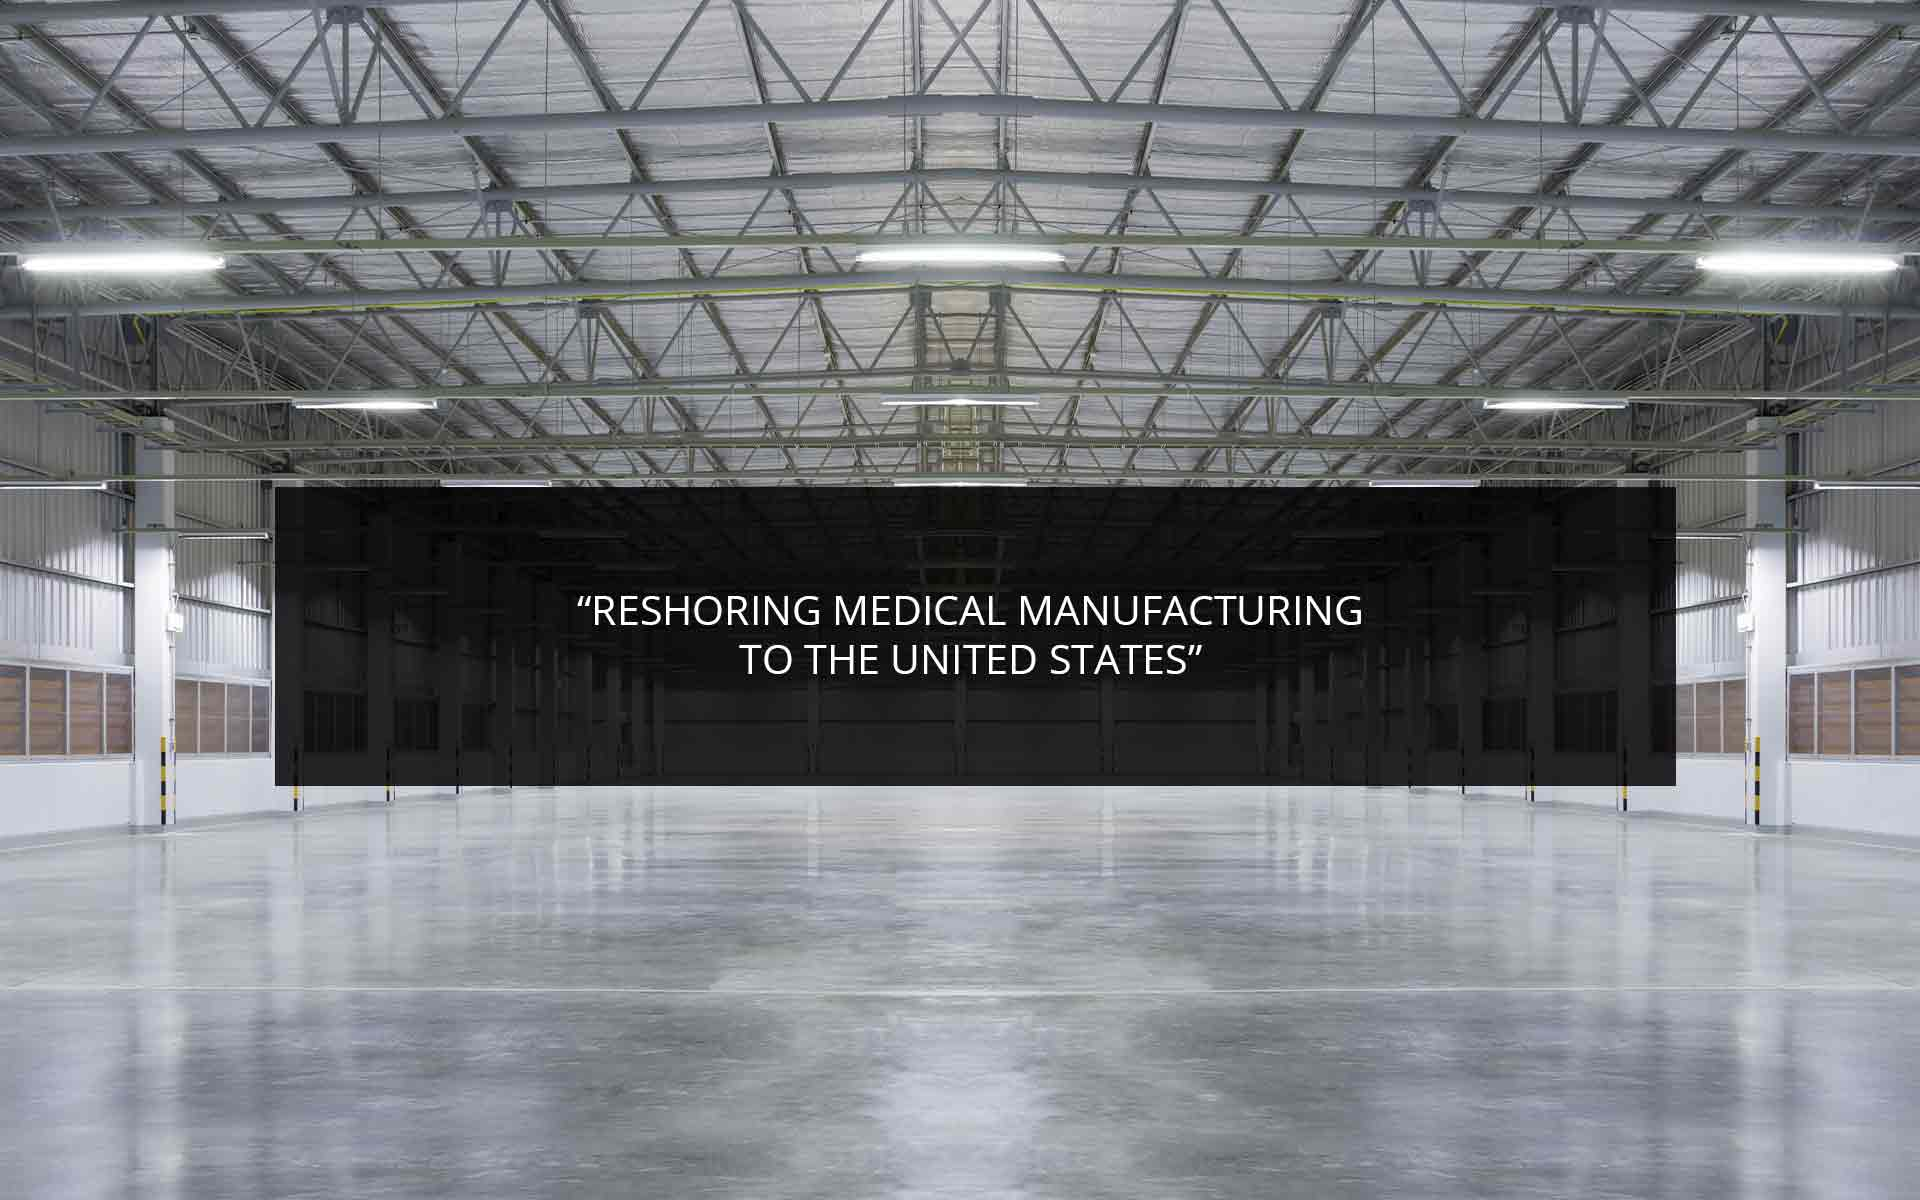 Reshoring Medical Manufacturing to the United States